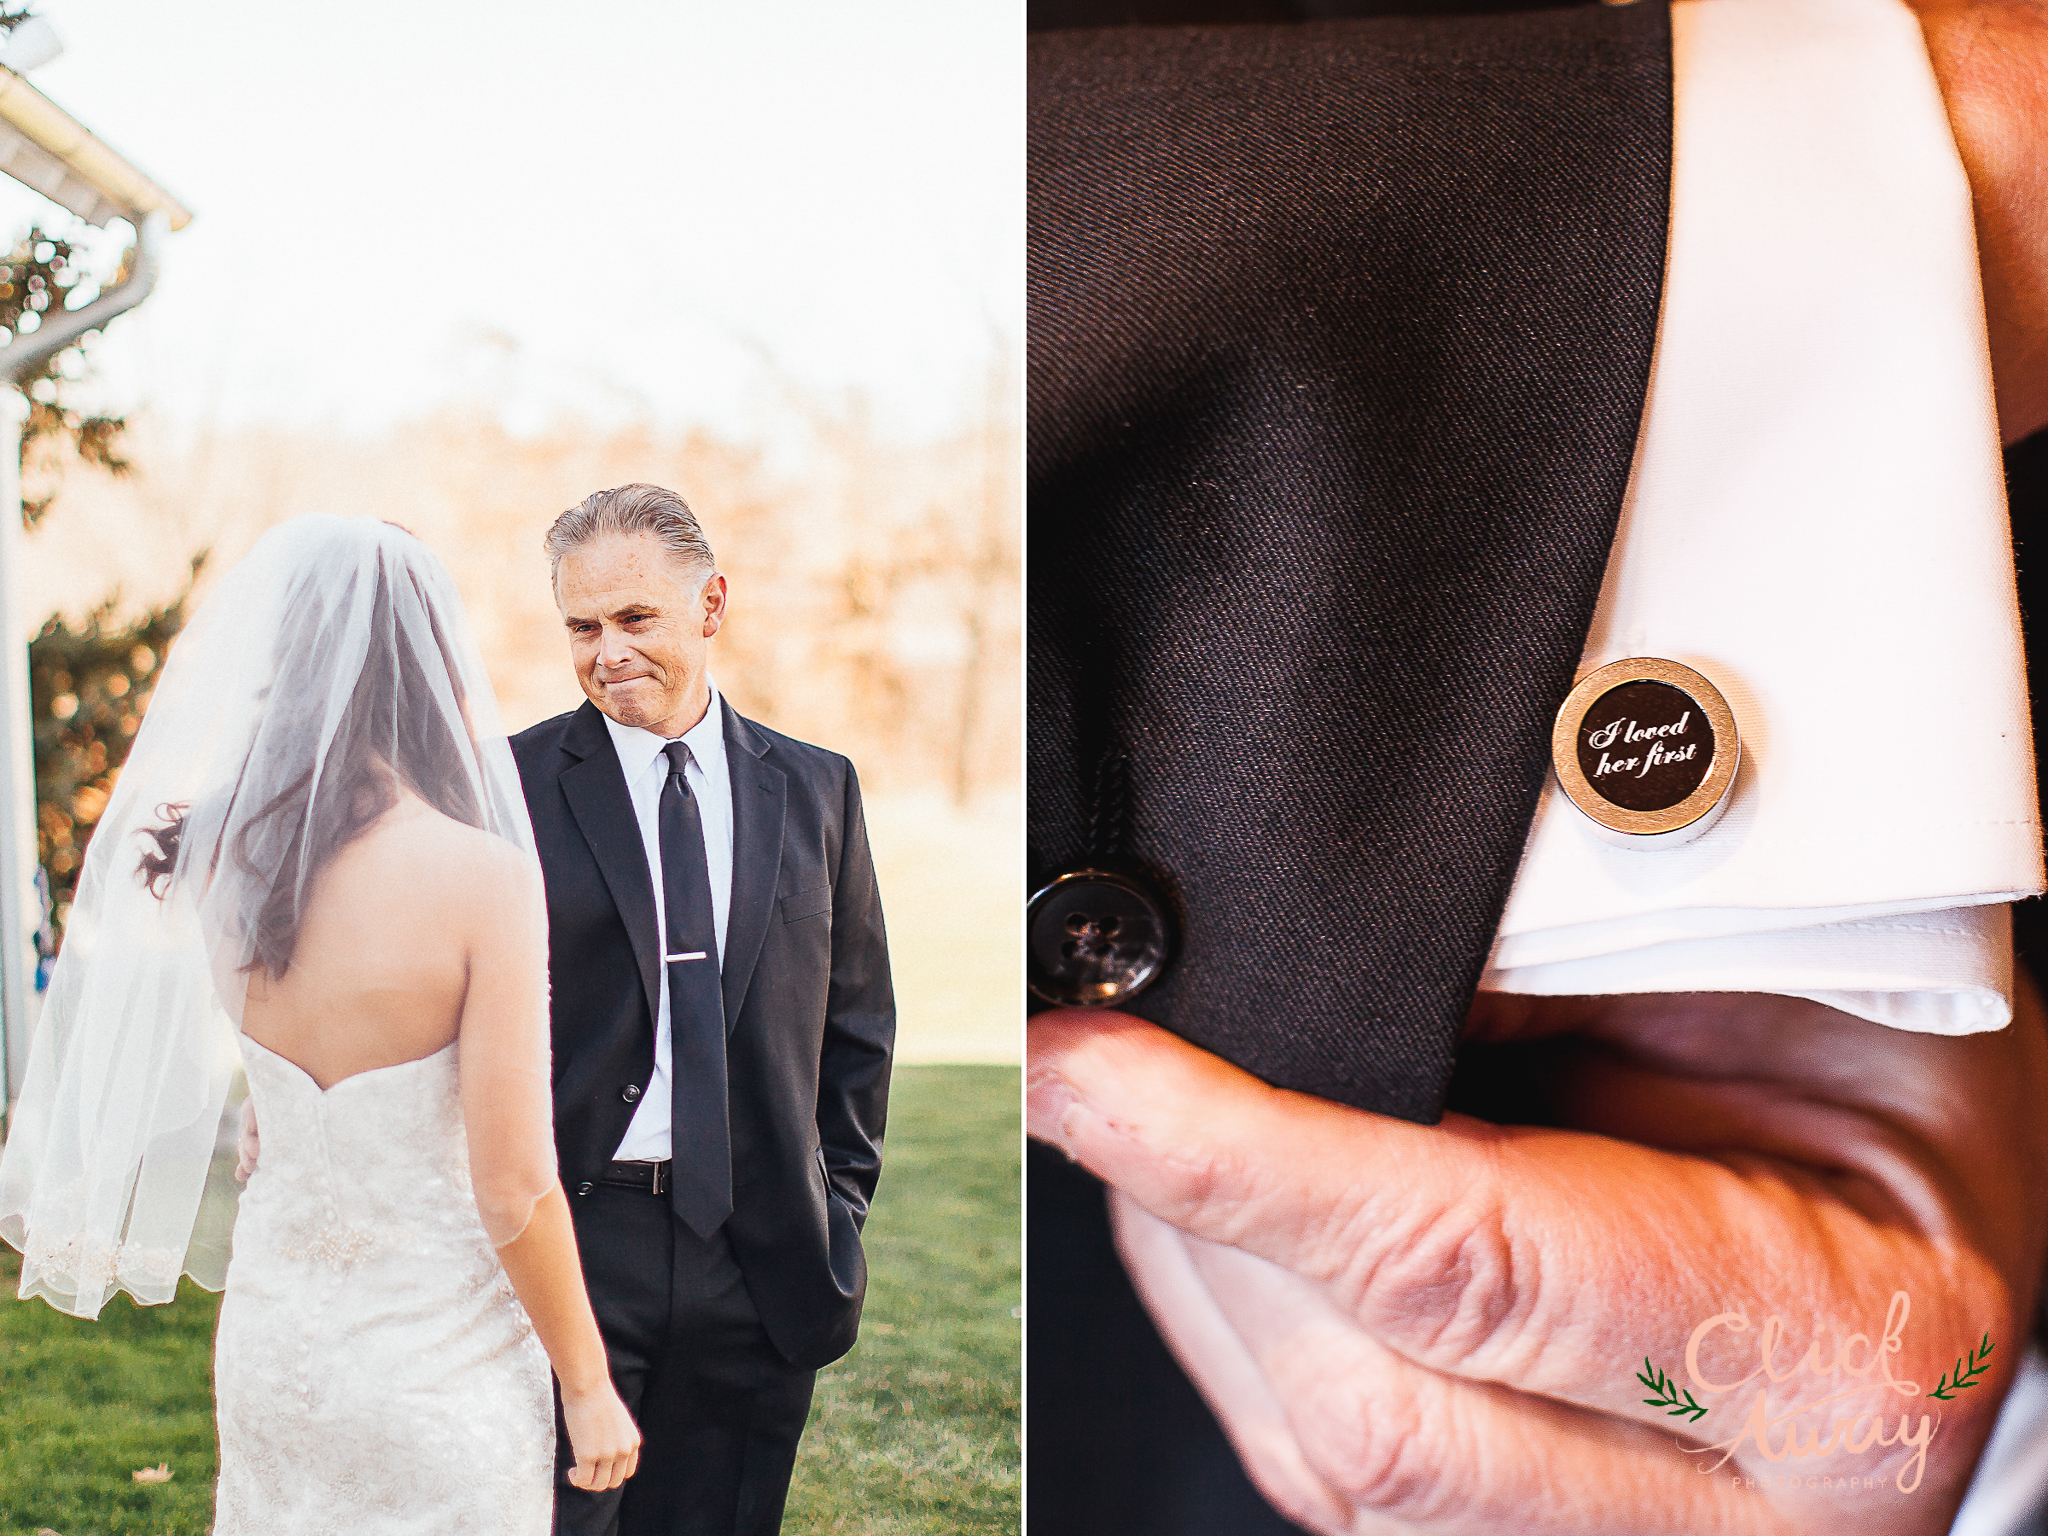 I loved you first cufflink and father's reaction to her daughter's dress